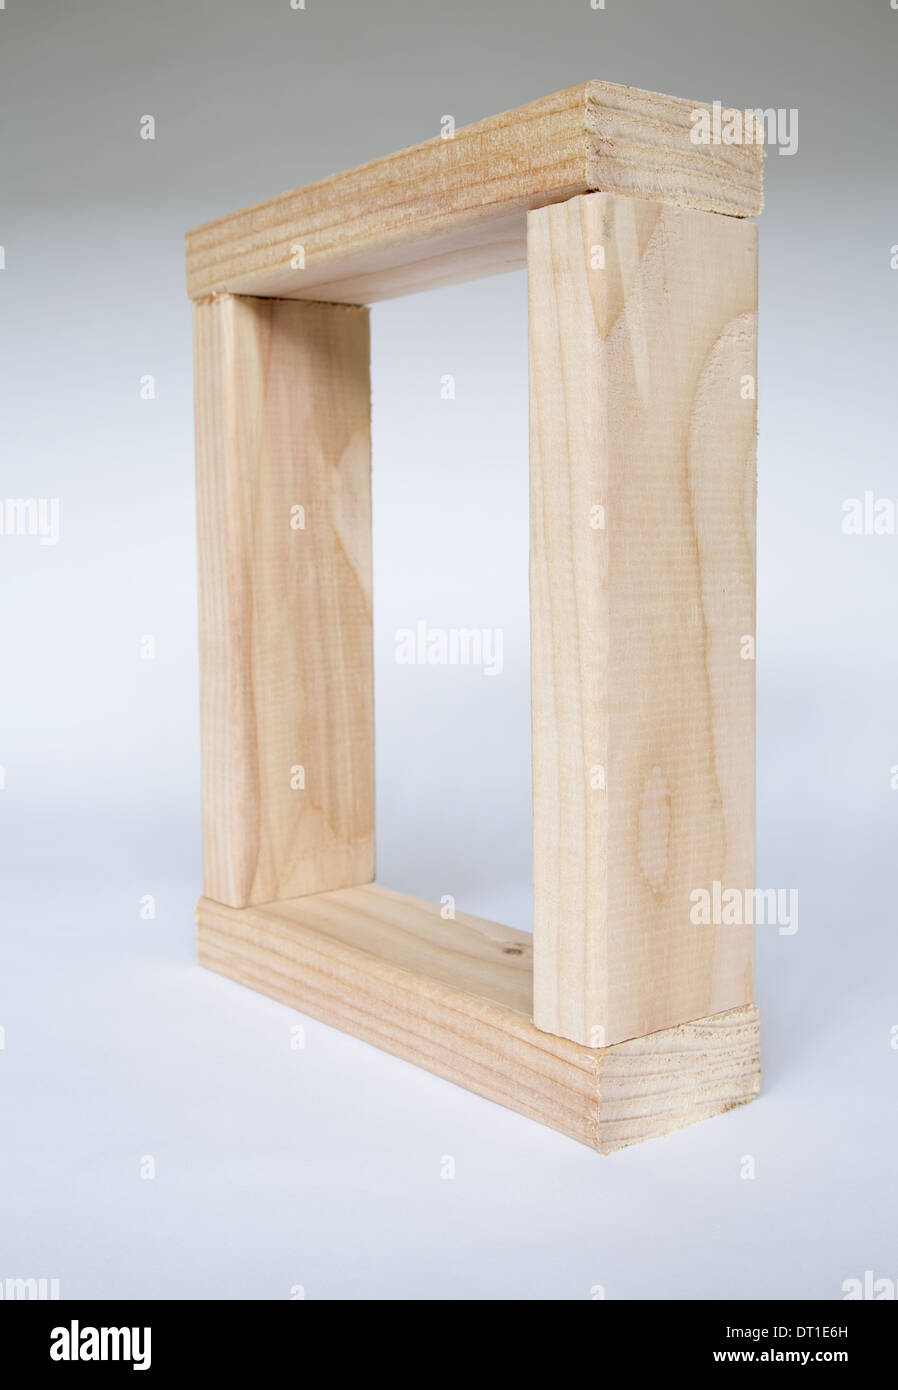 Washington State USA wood timbers fitted together Spruce square frame - Stock Image